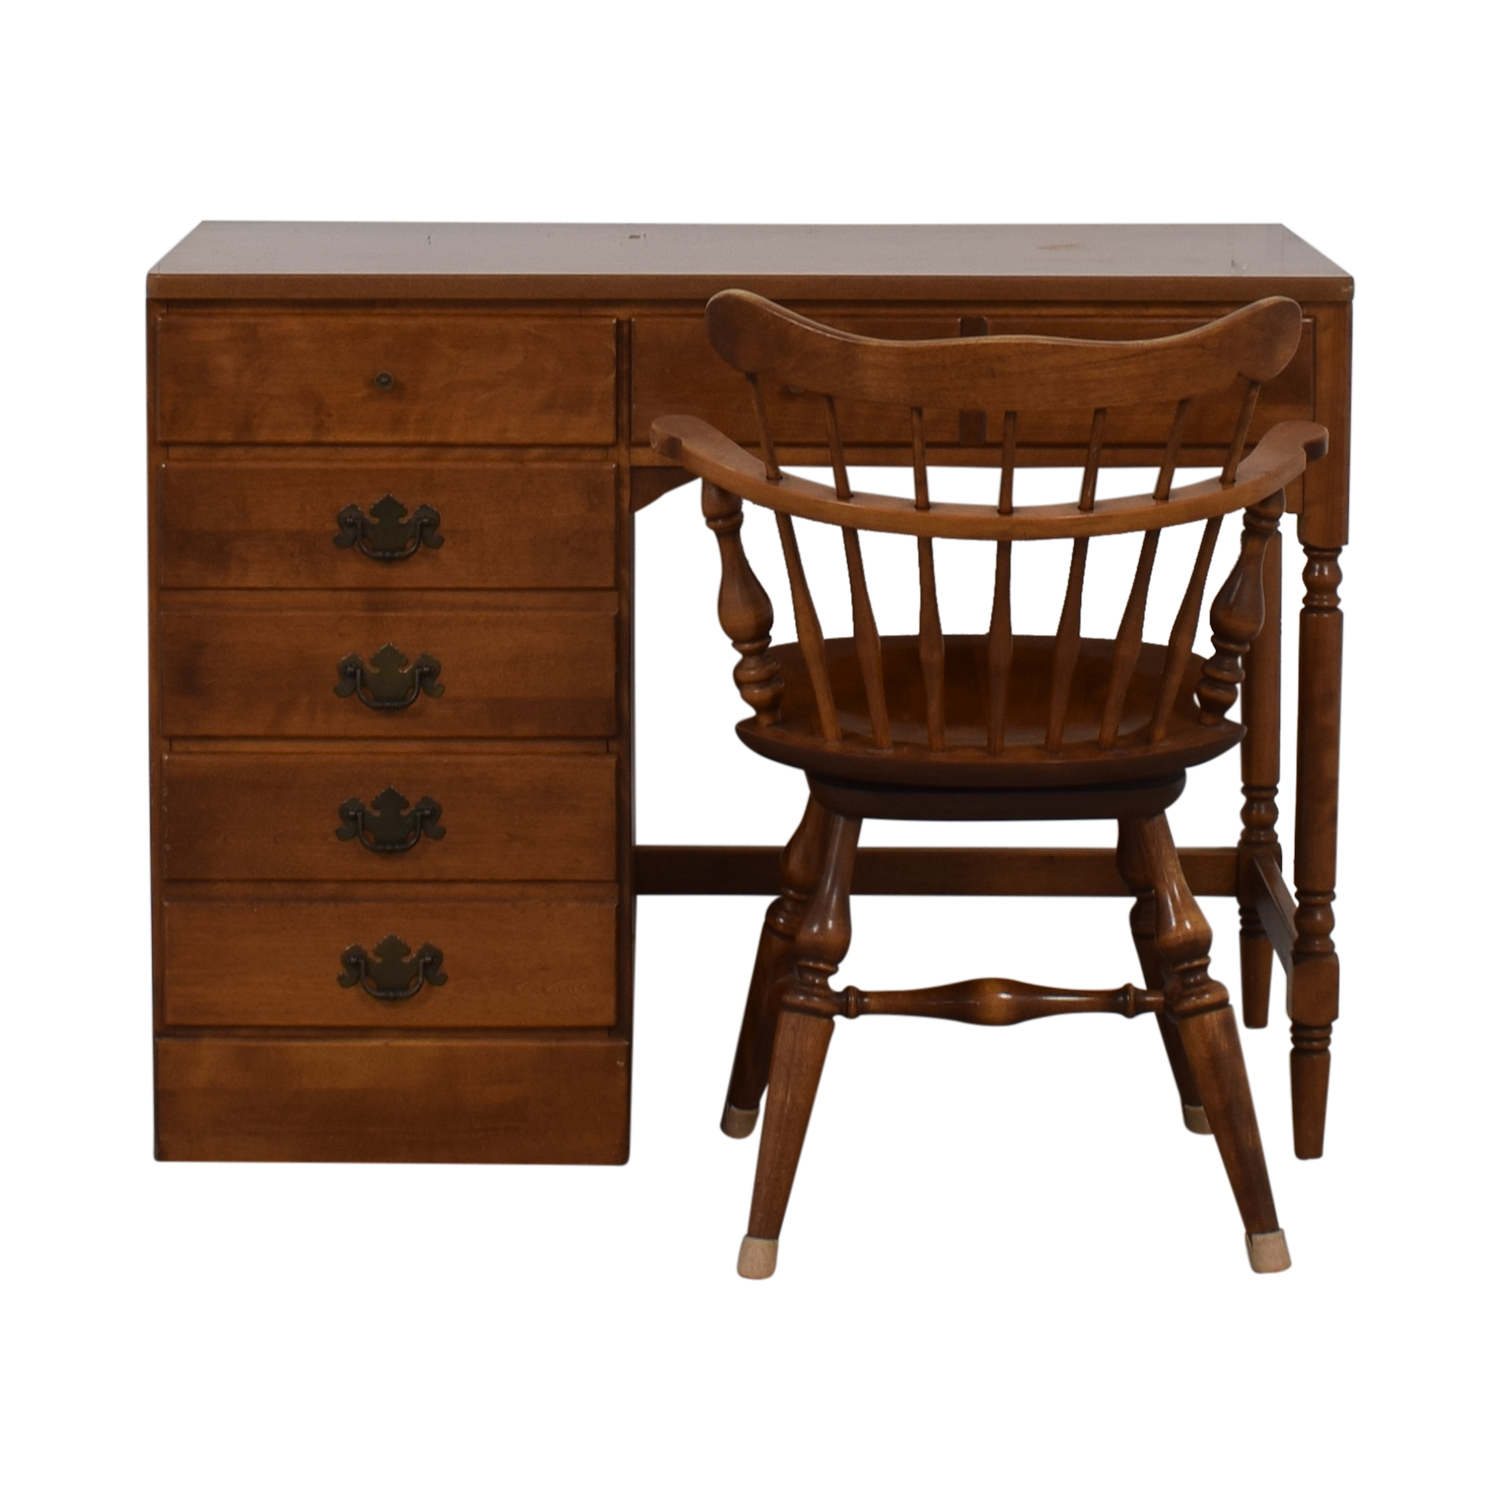 Ethan Allen Ethan Allen Seven-Drawer Desk and Chair on sale